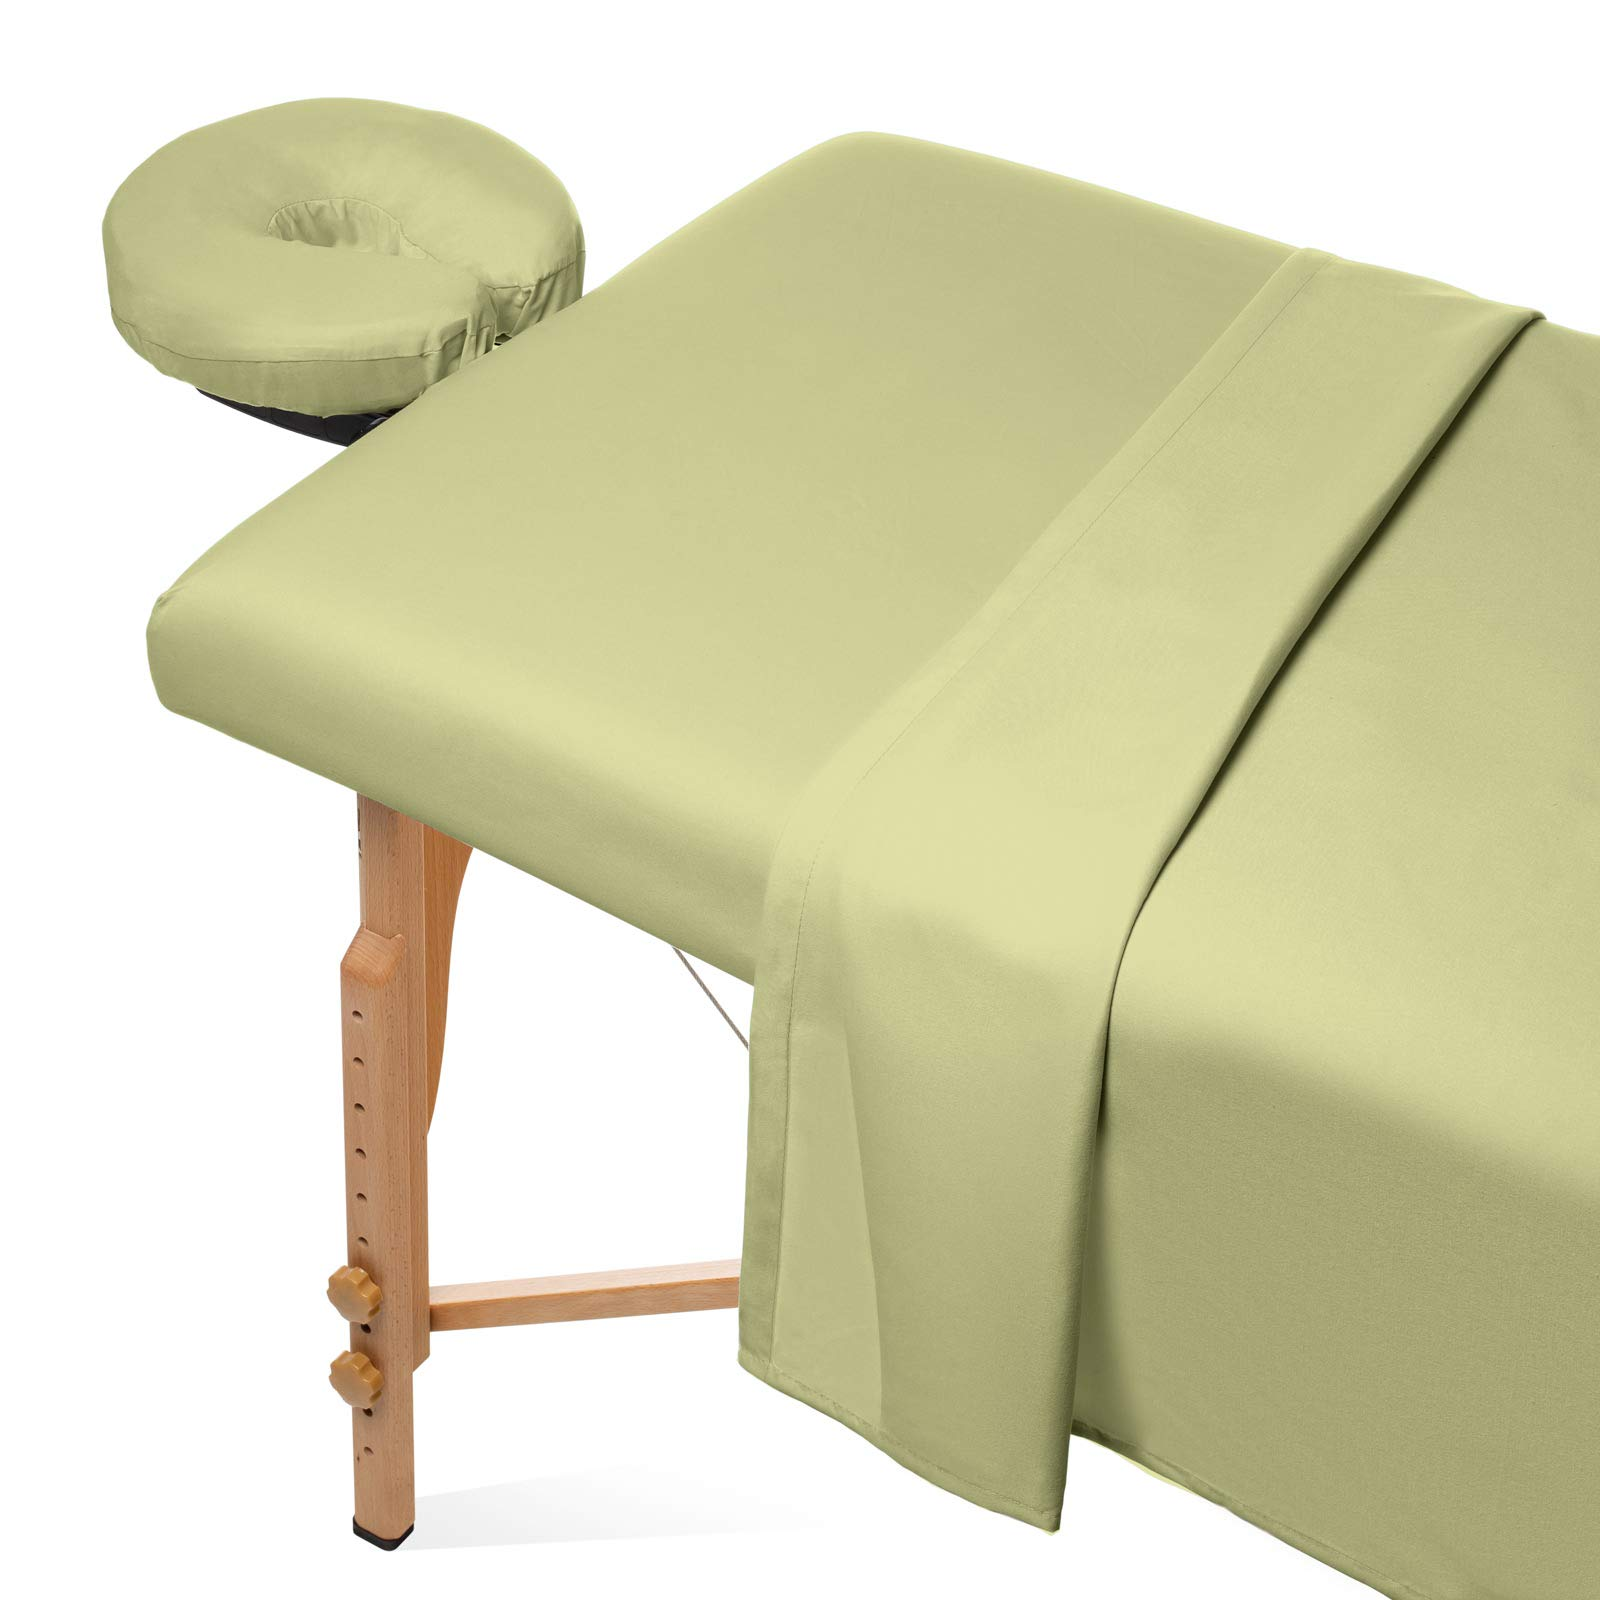 Saloniture 3-Piece Microfiber Massage Table Sheet Set - Premium Facial Bed Cover - Includes Flat and Fitted Sheets with Face Cradle Cover - Sage Green by Saloniture